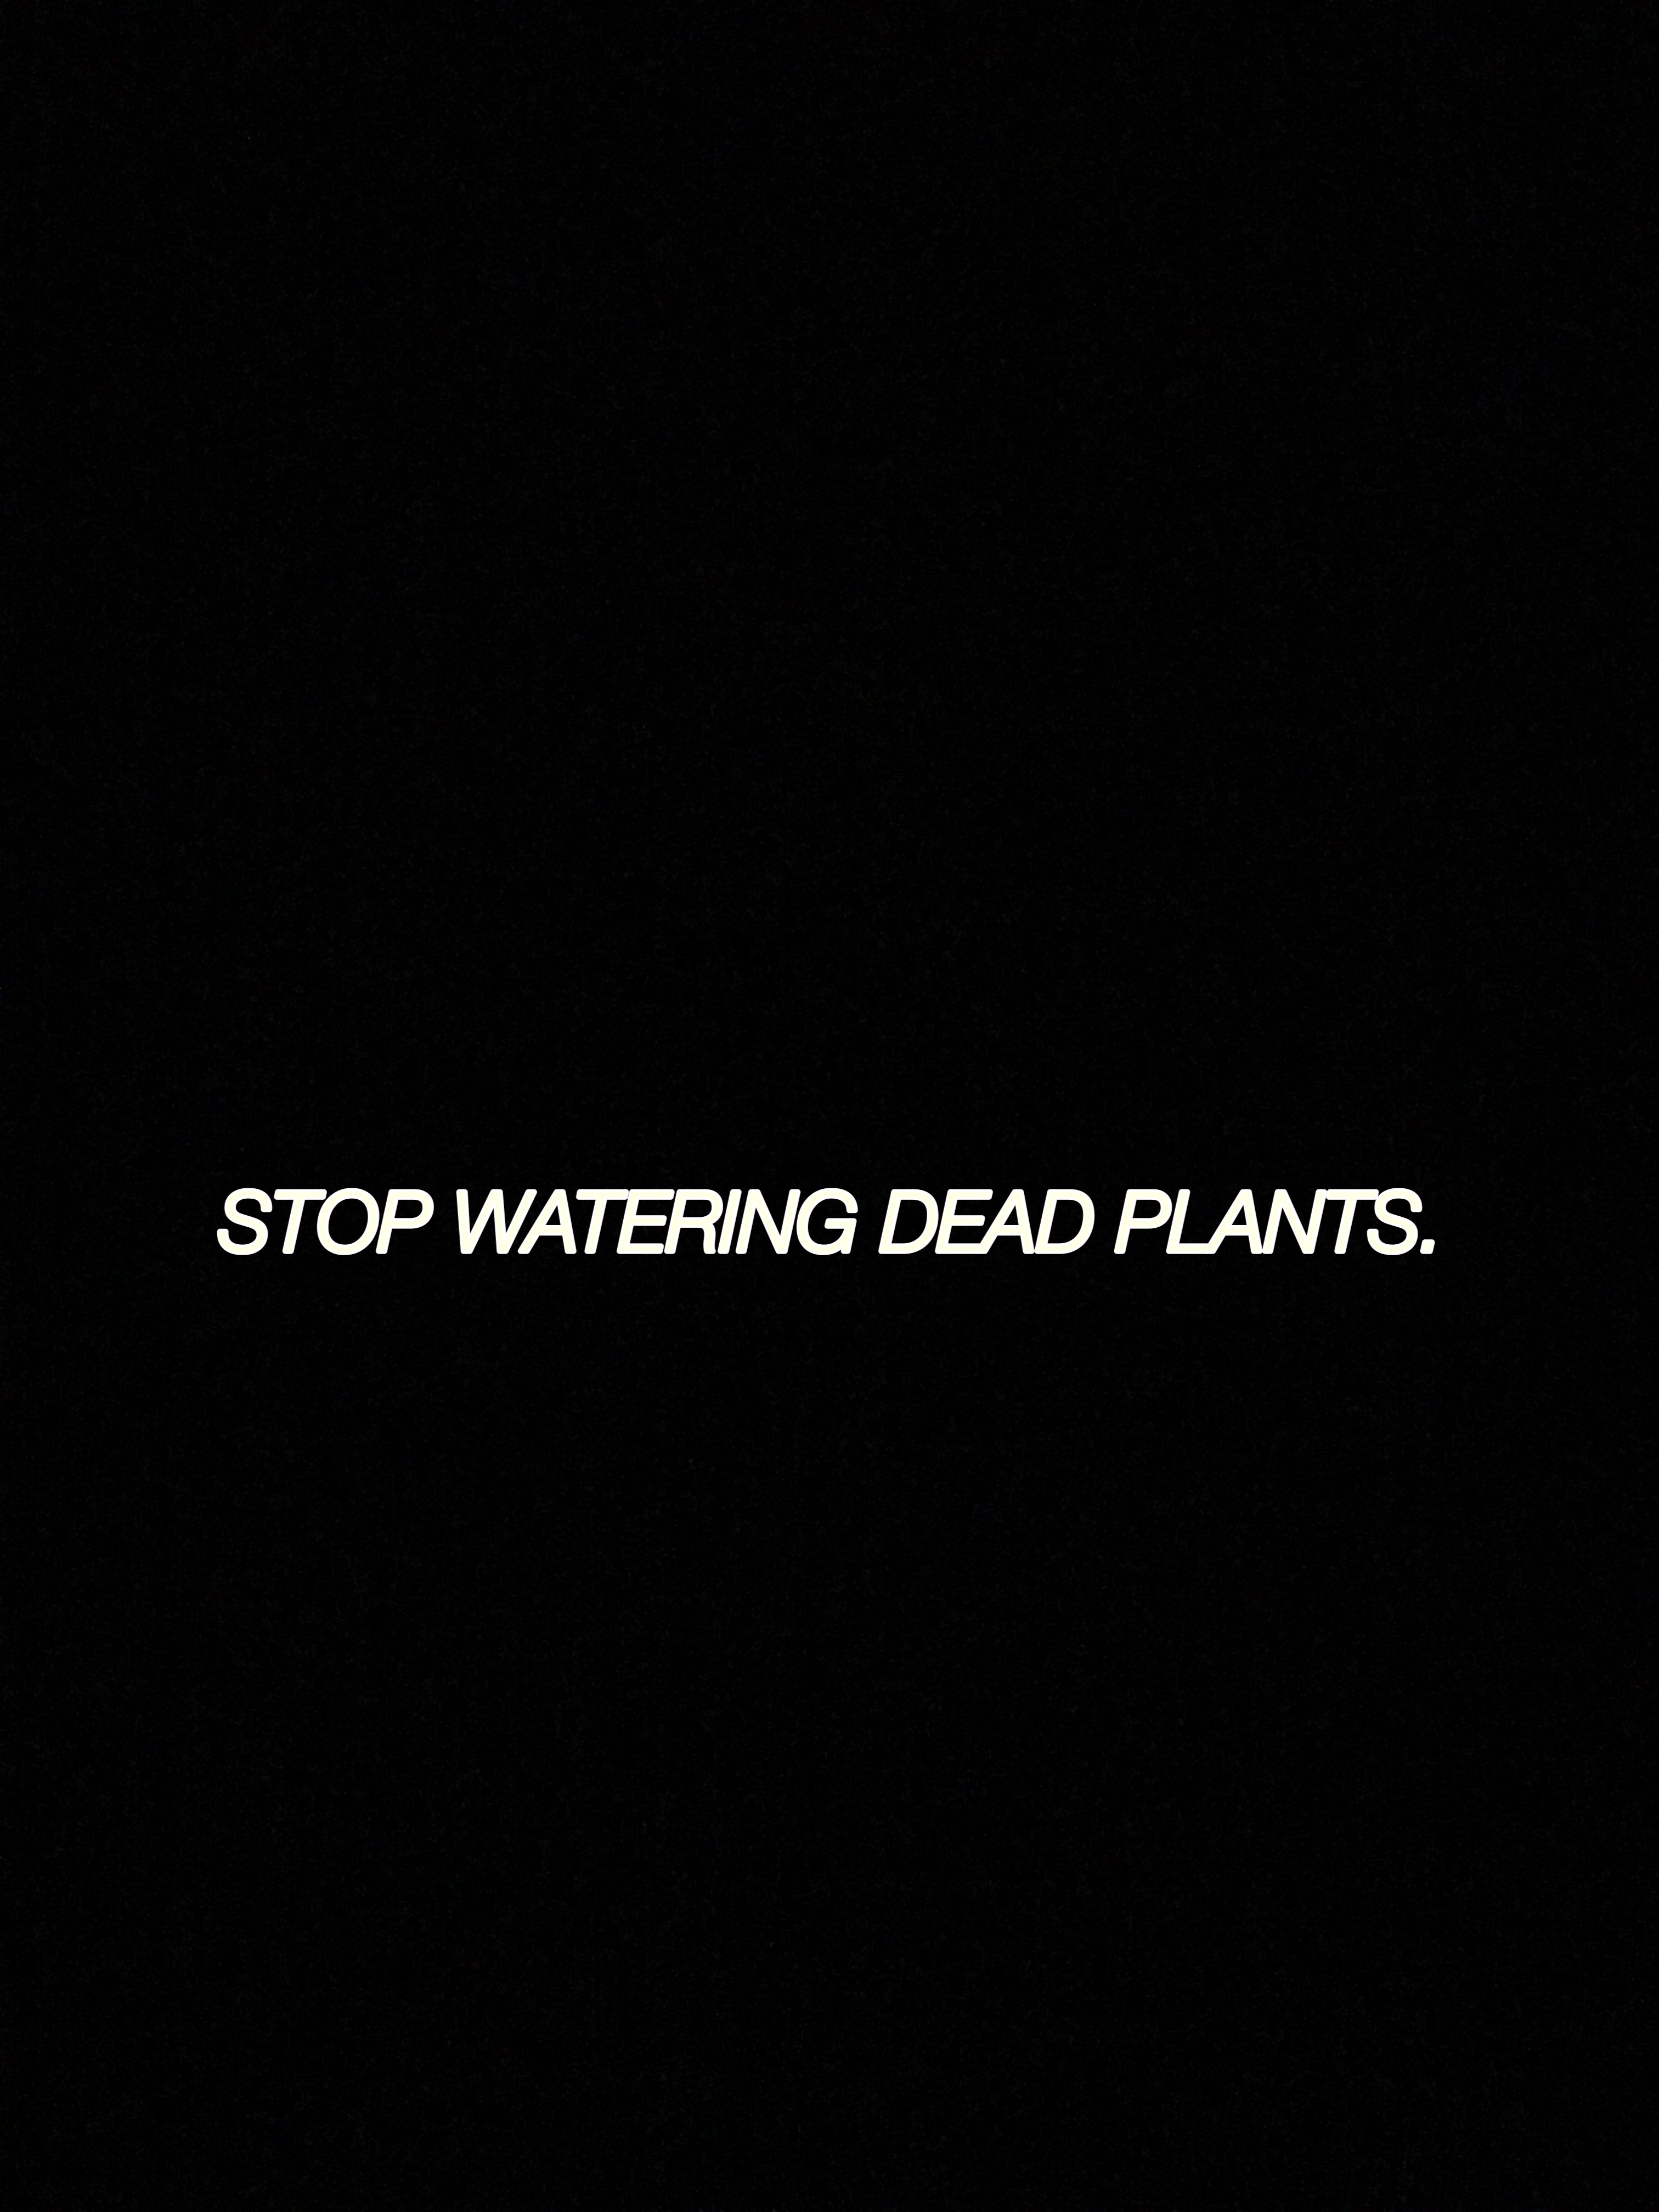 a note to self: you need to stop watering the dead plants in your life